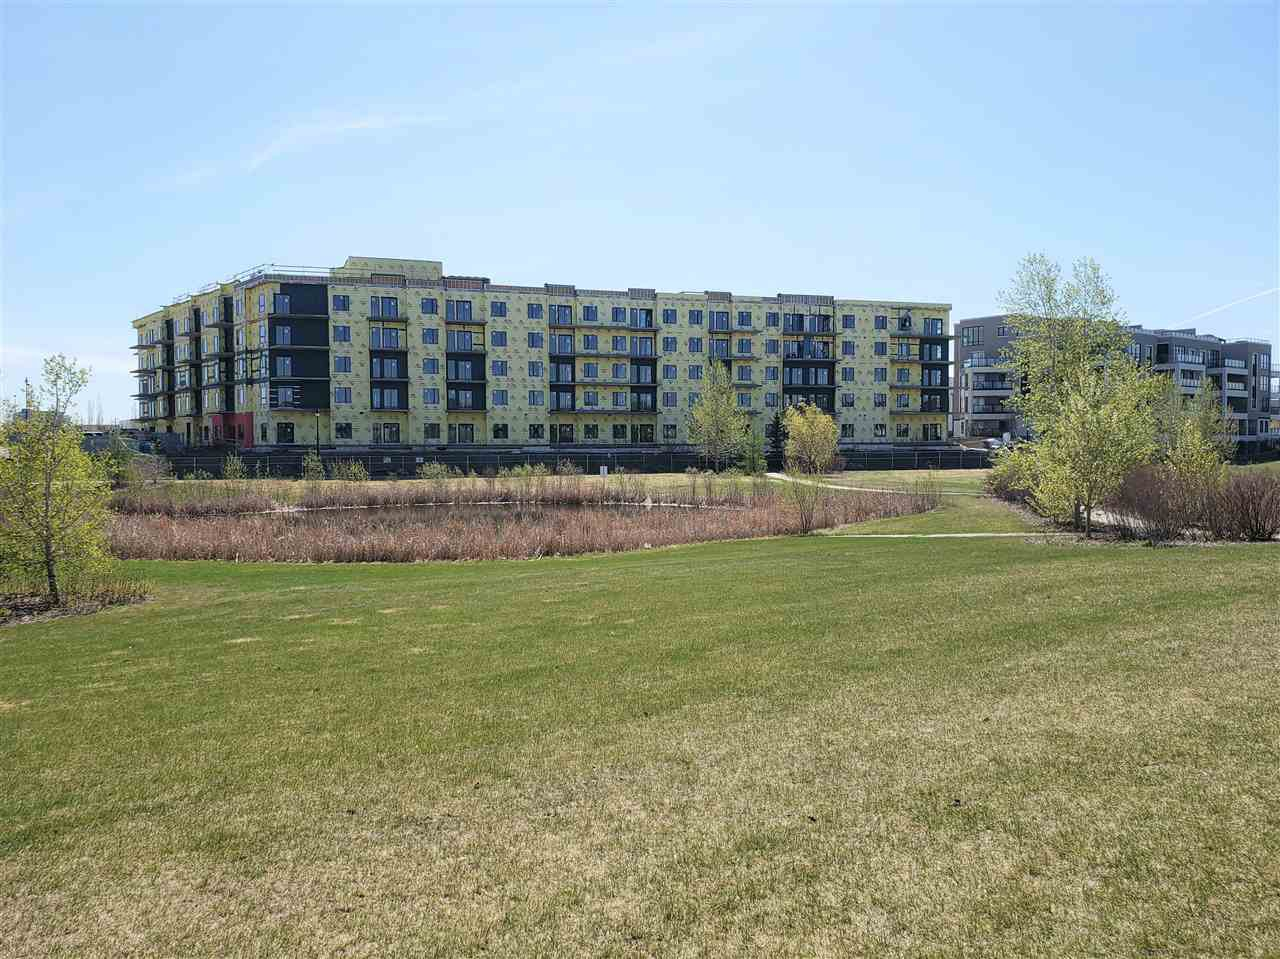 Main Photo: 218 1306c Windermere Way in Edmonton: Zone 56 Condo for sale : MLS®# E4191410